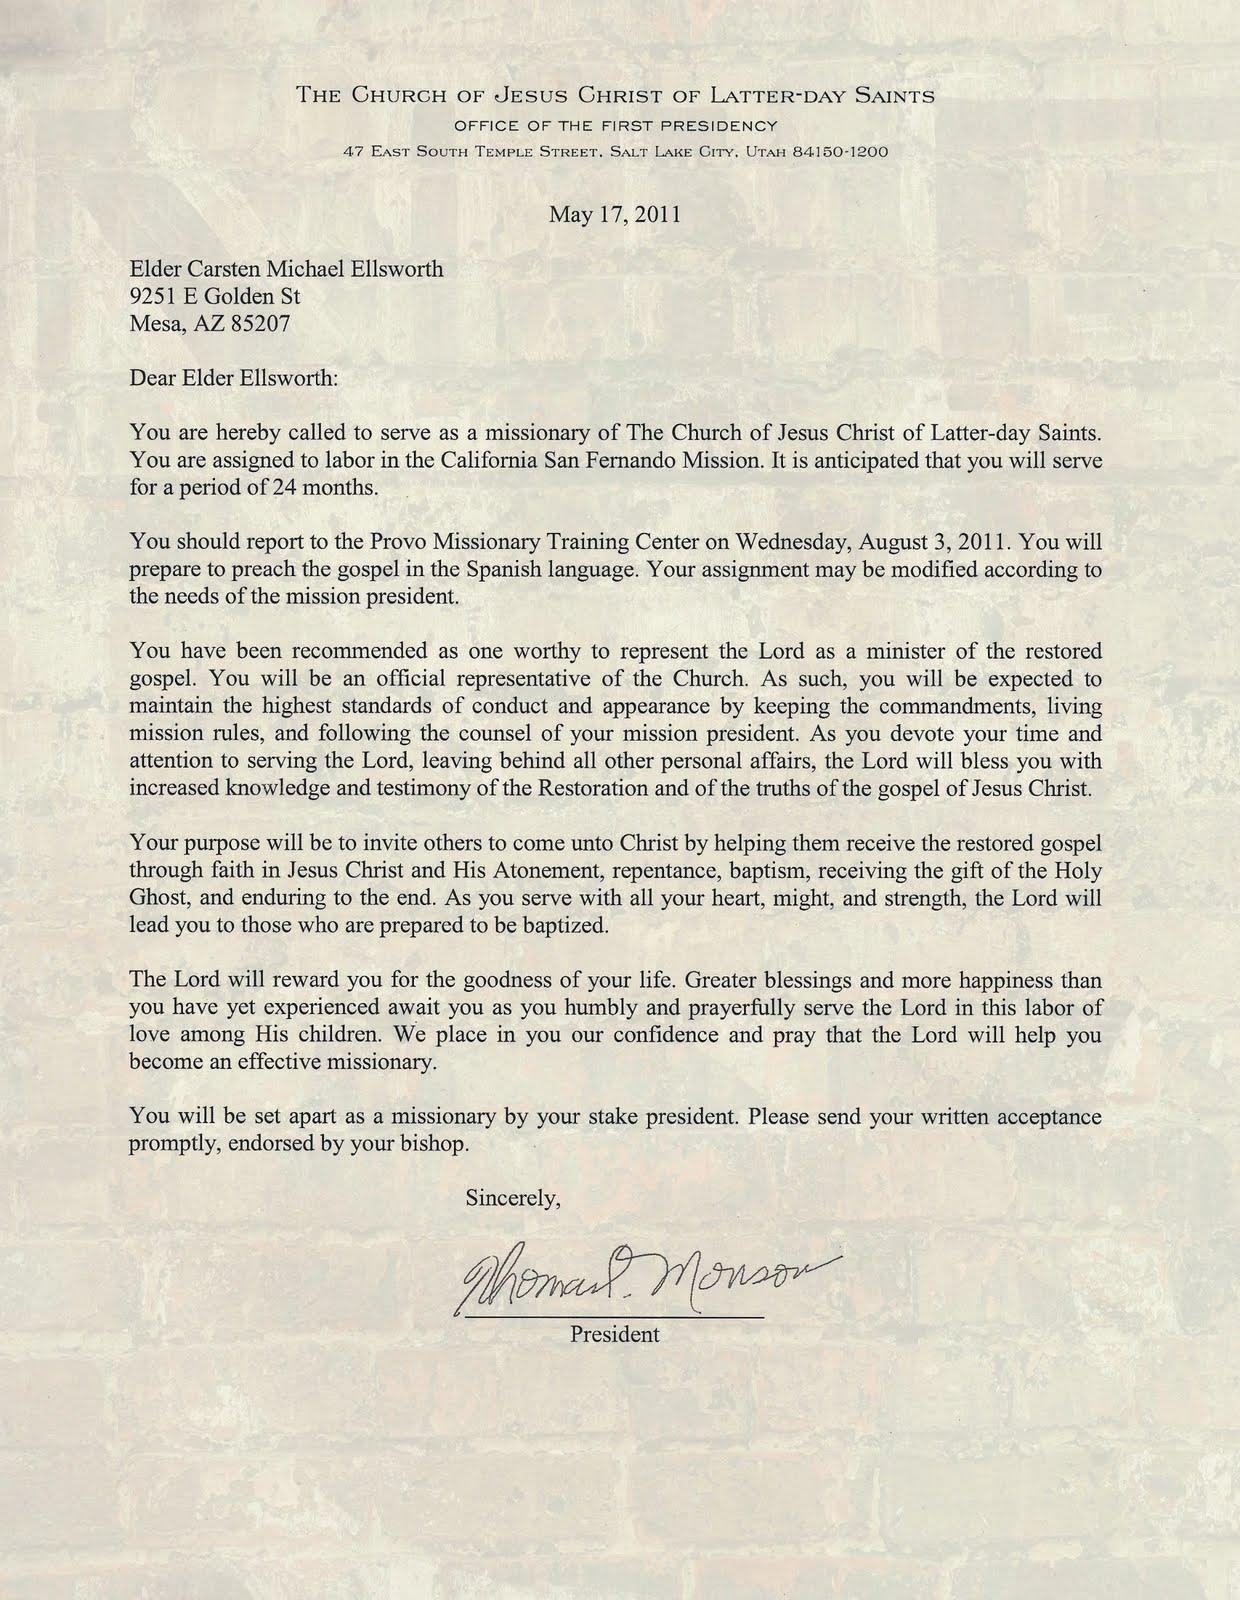 Here is my mission letter from President Monson...